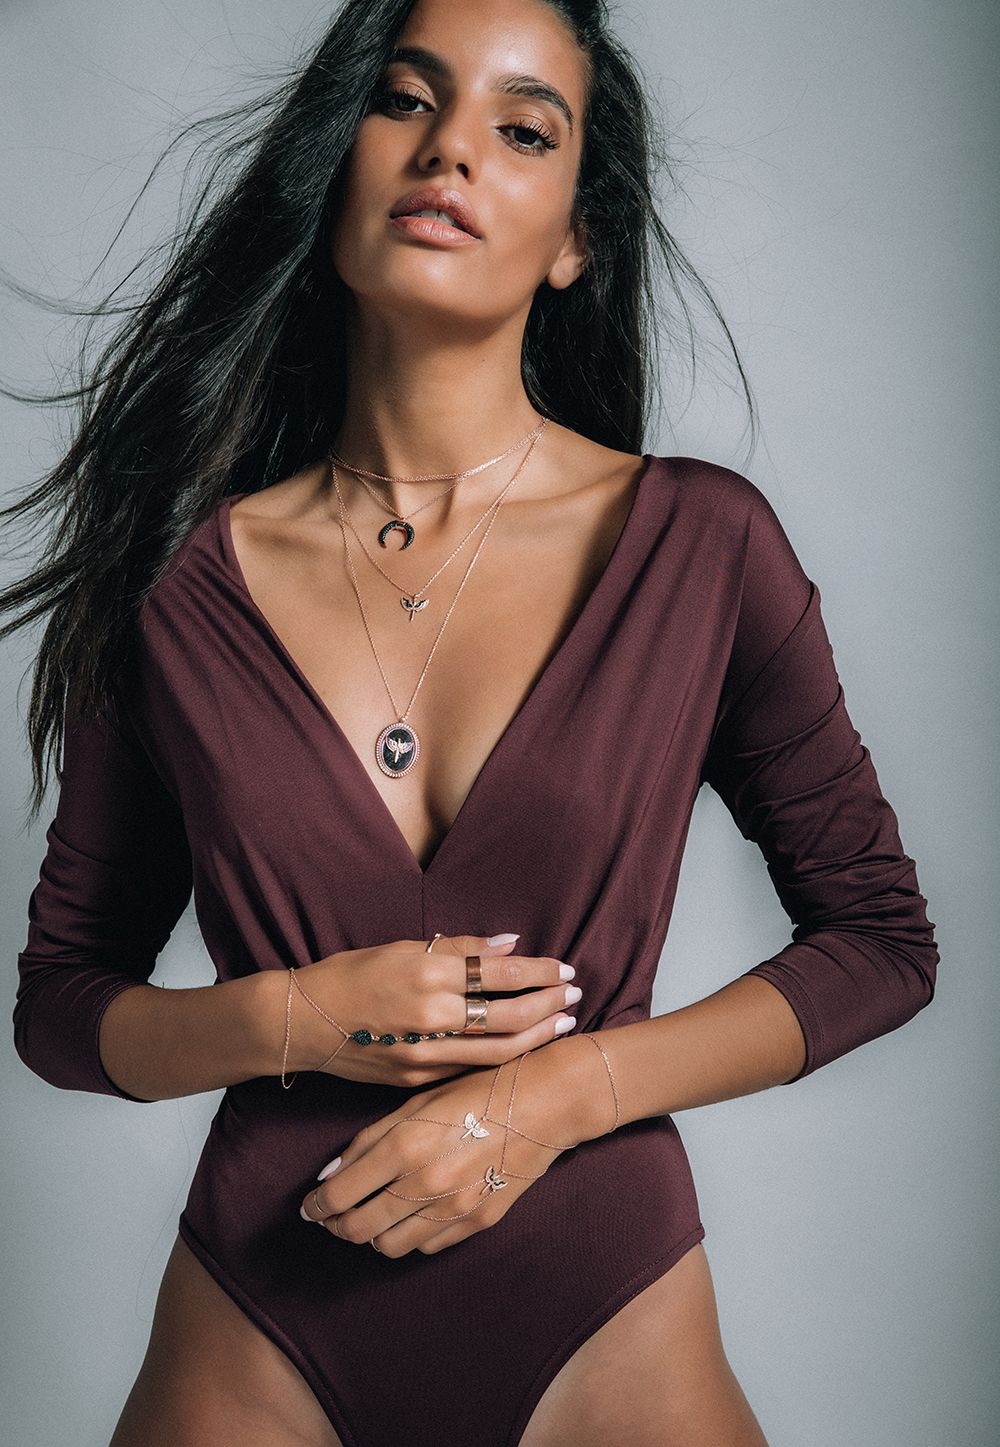 MELIE BRAND | Kebelek | Jewellery Collection Campaign